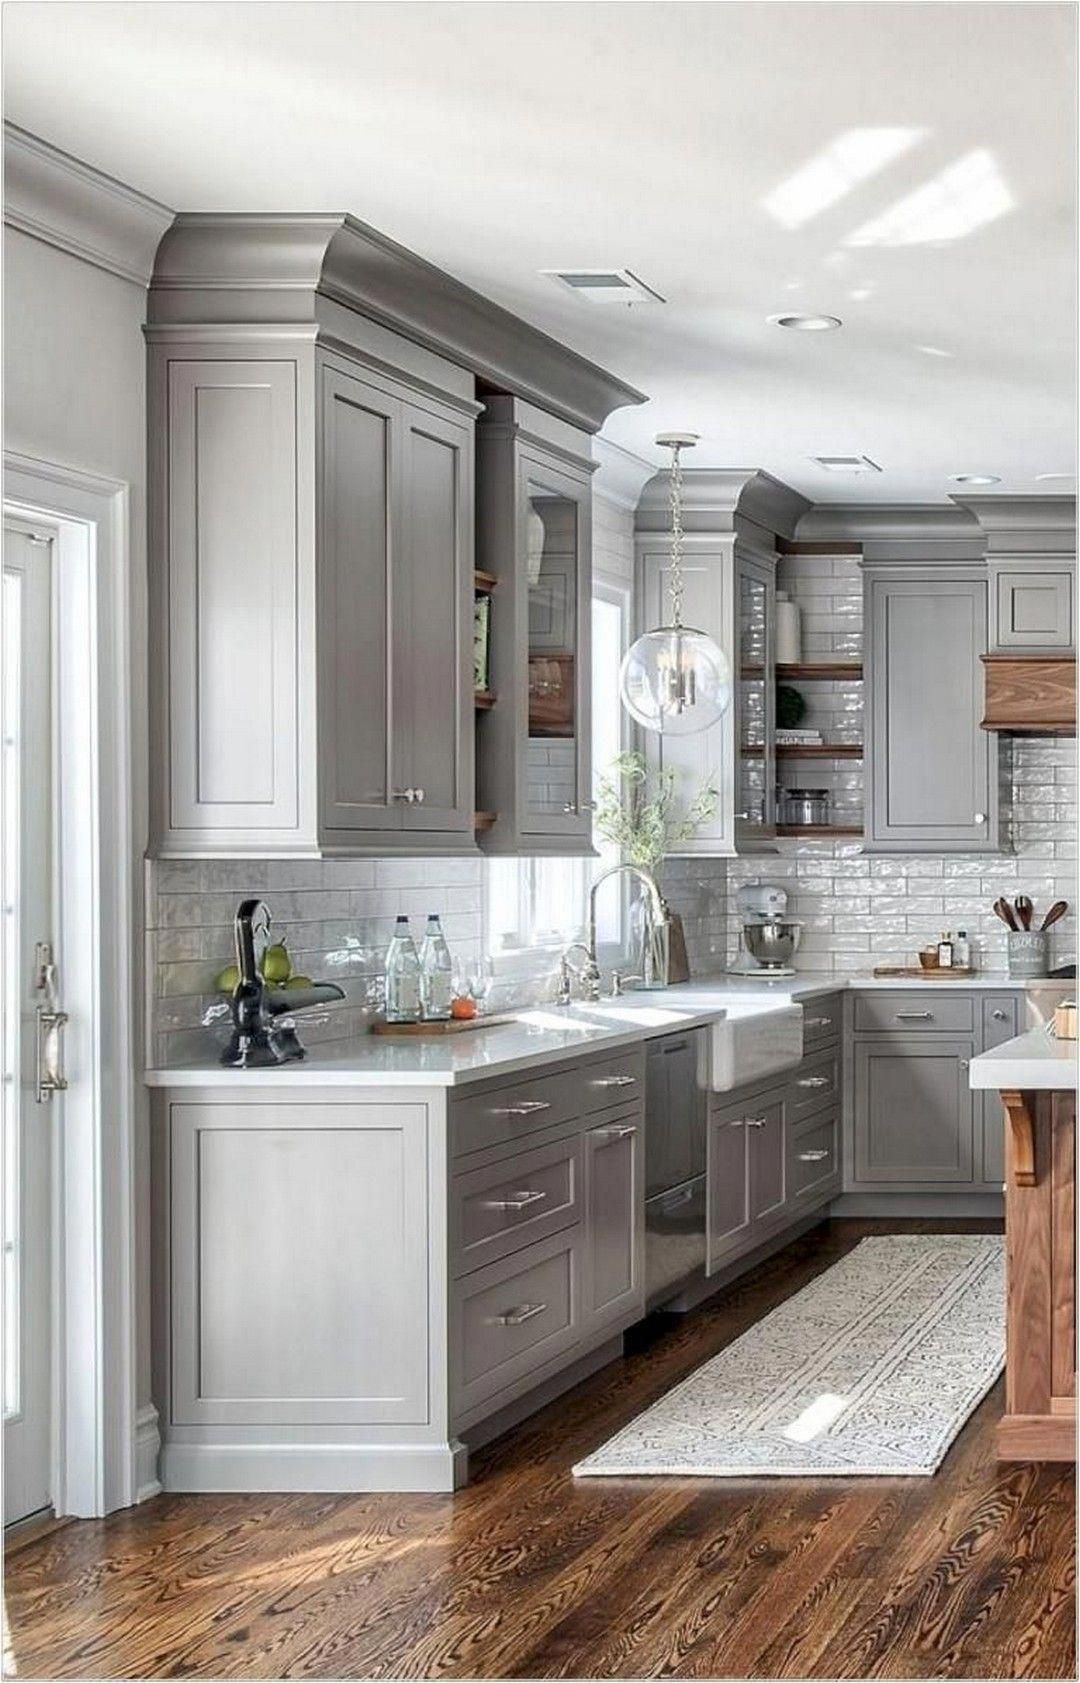 modernkitchendesign in 2019 Farmhouse kitchen